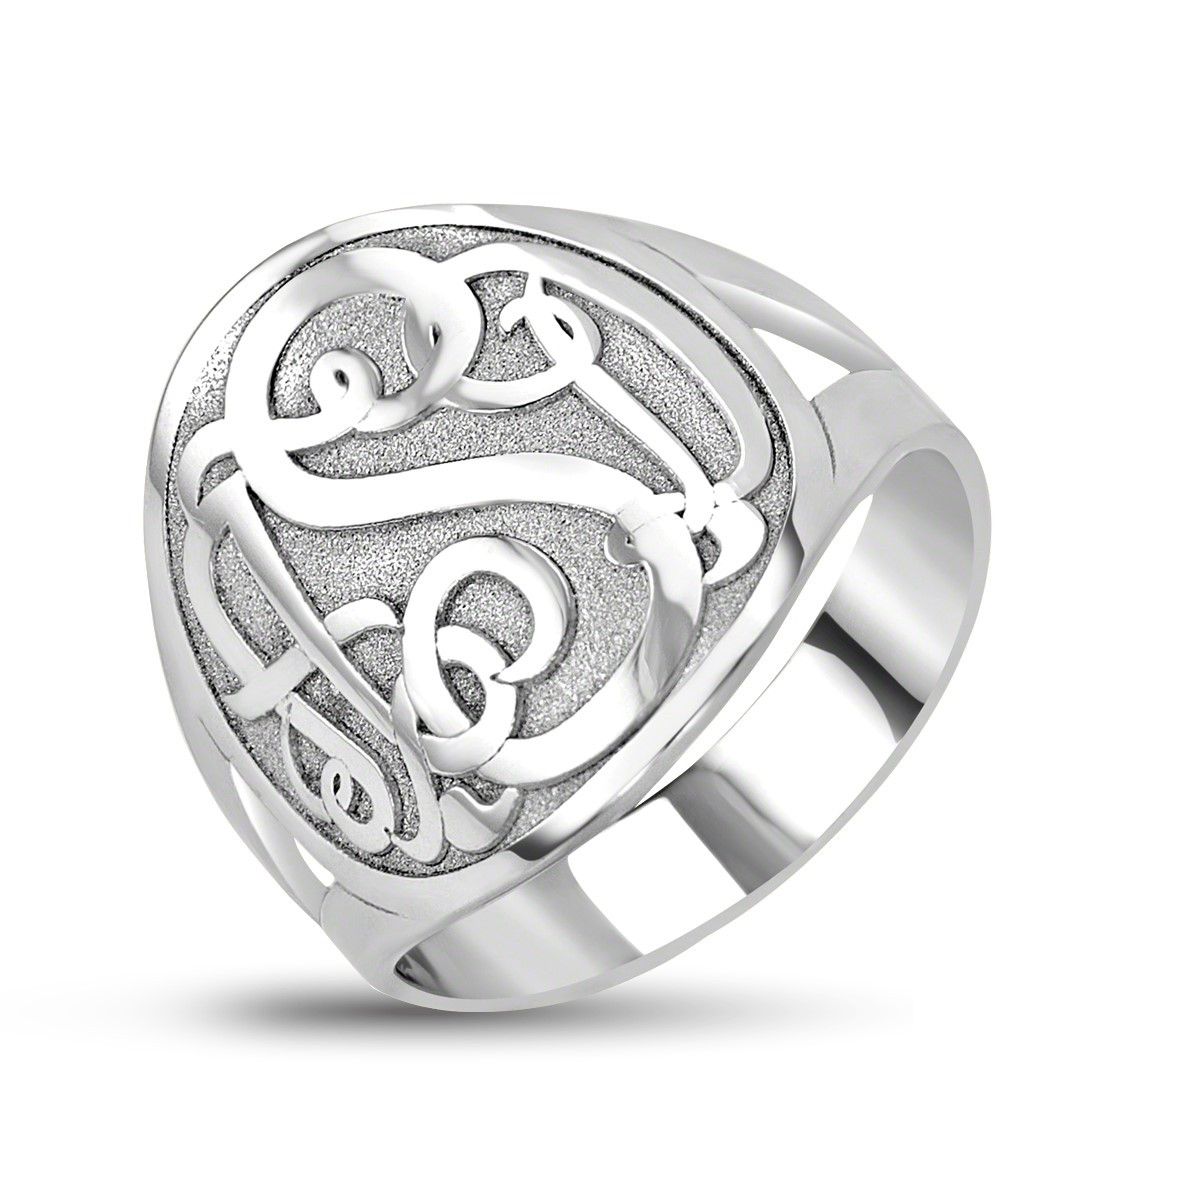 MONOGRAM RING W/ SOLID BACKING